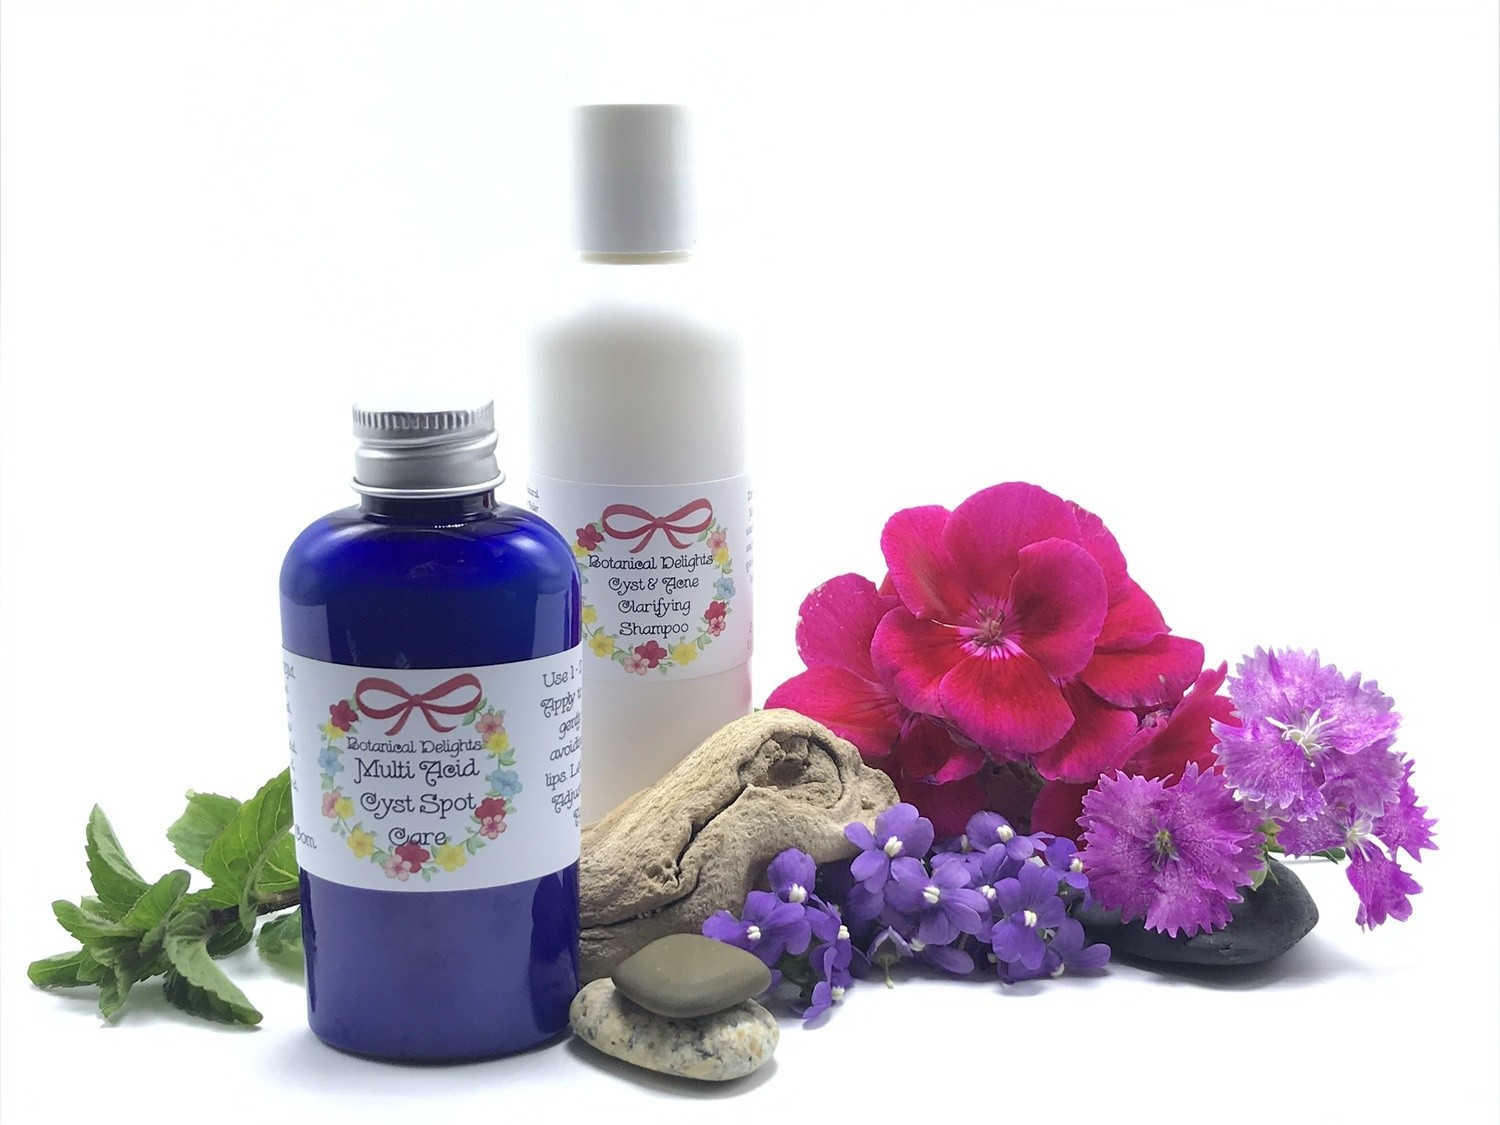 PILAR CYST Set - Shampoo & Serum for scalp cysts and acne